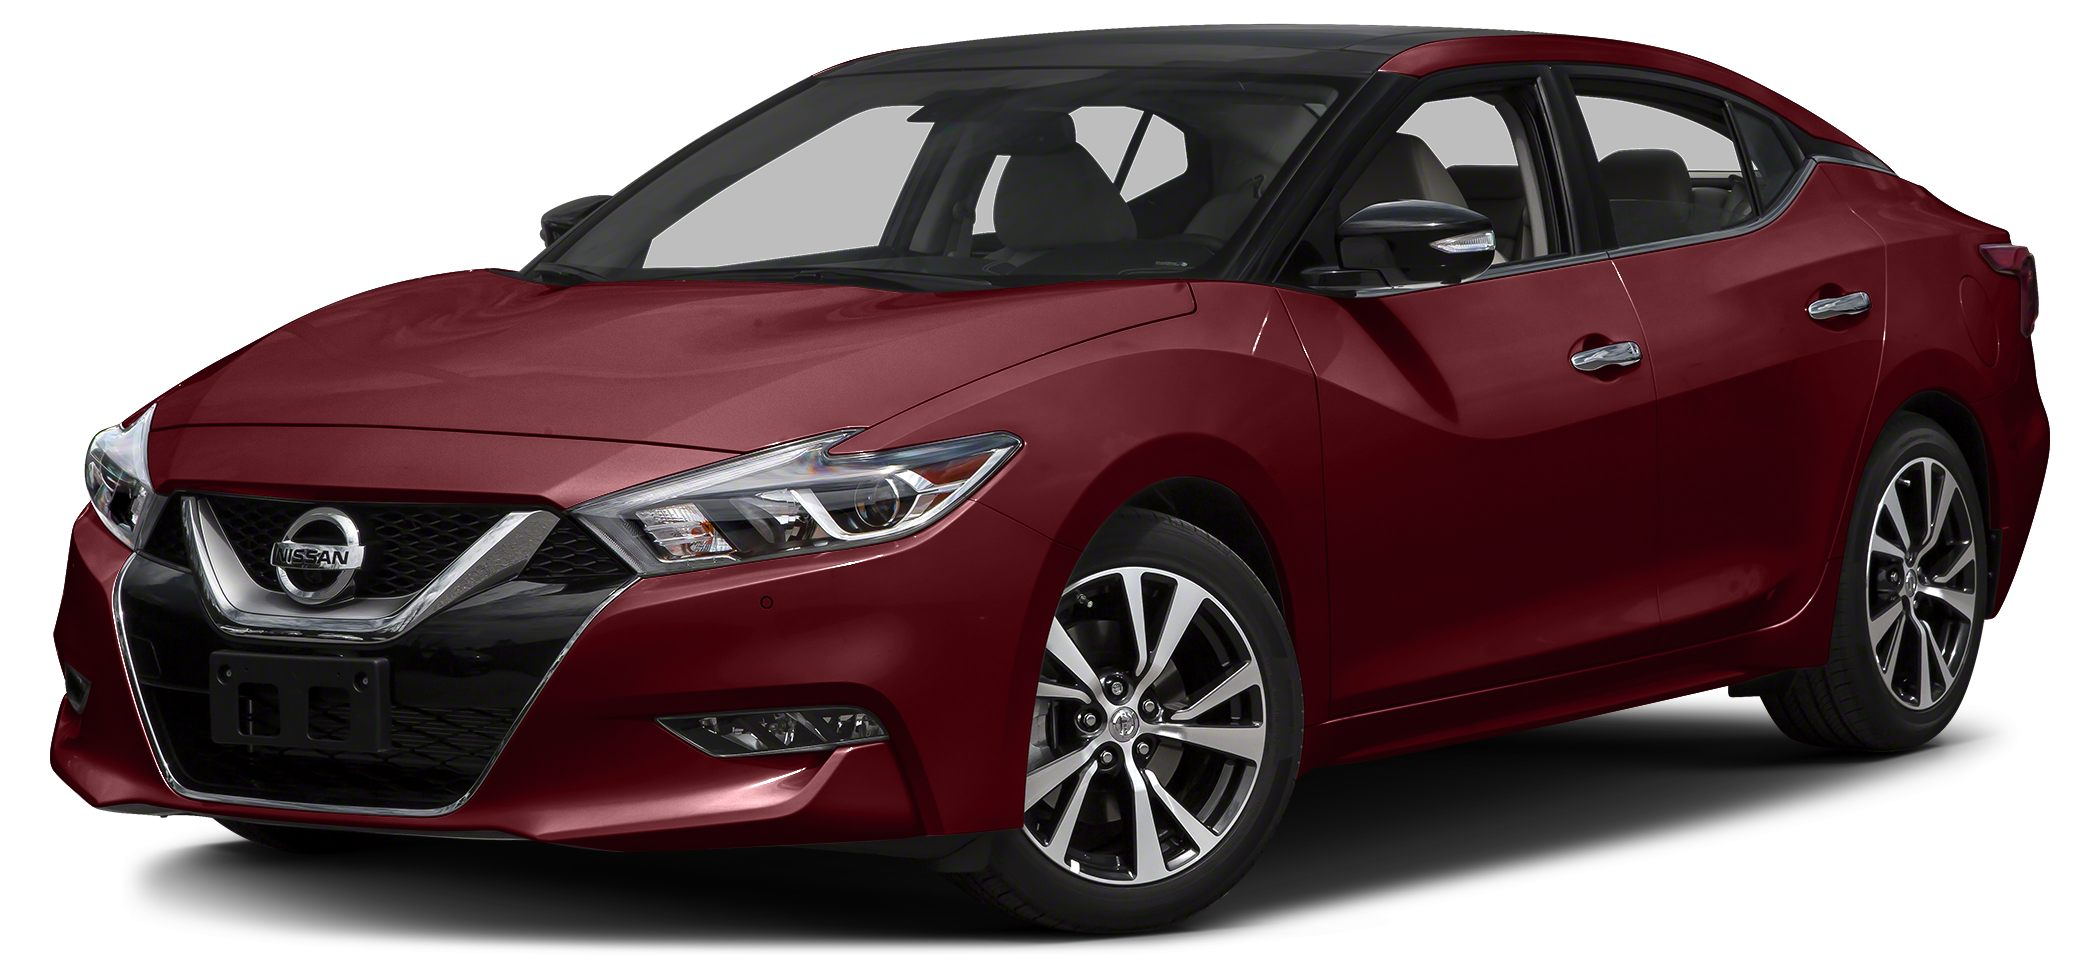 2016 Nissan Maxima  This White 2016 Nissan Maxima Platinum might be just the 4 dr sedan for you D